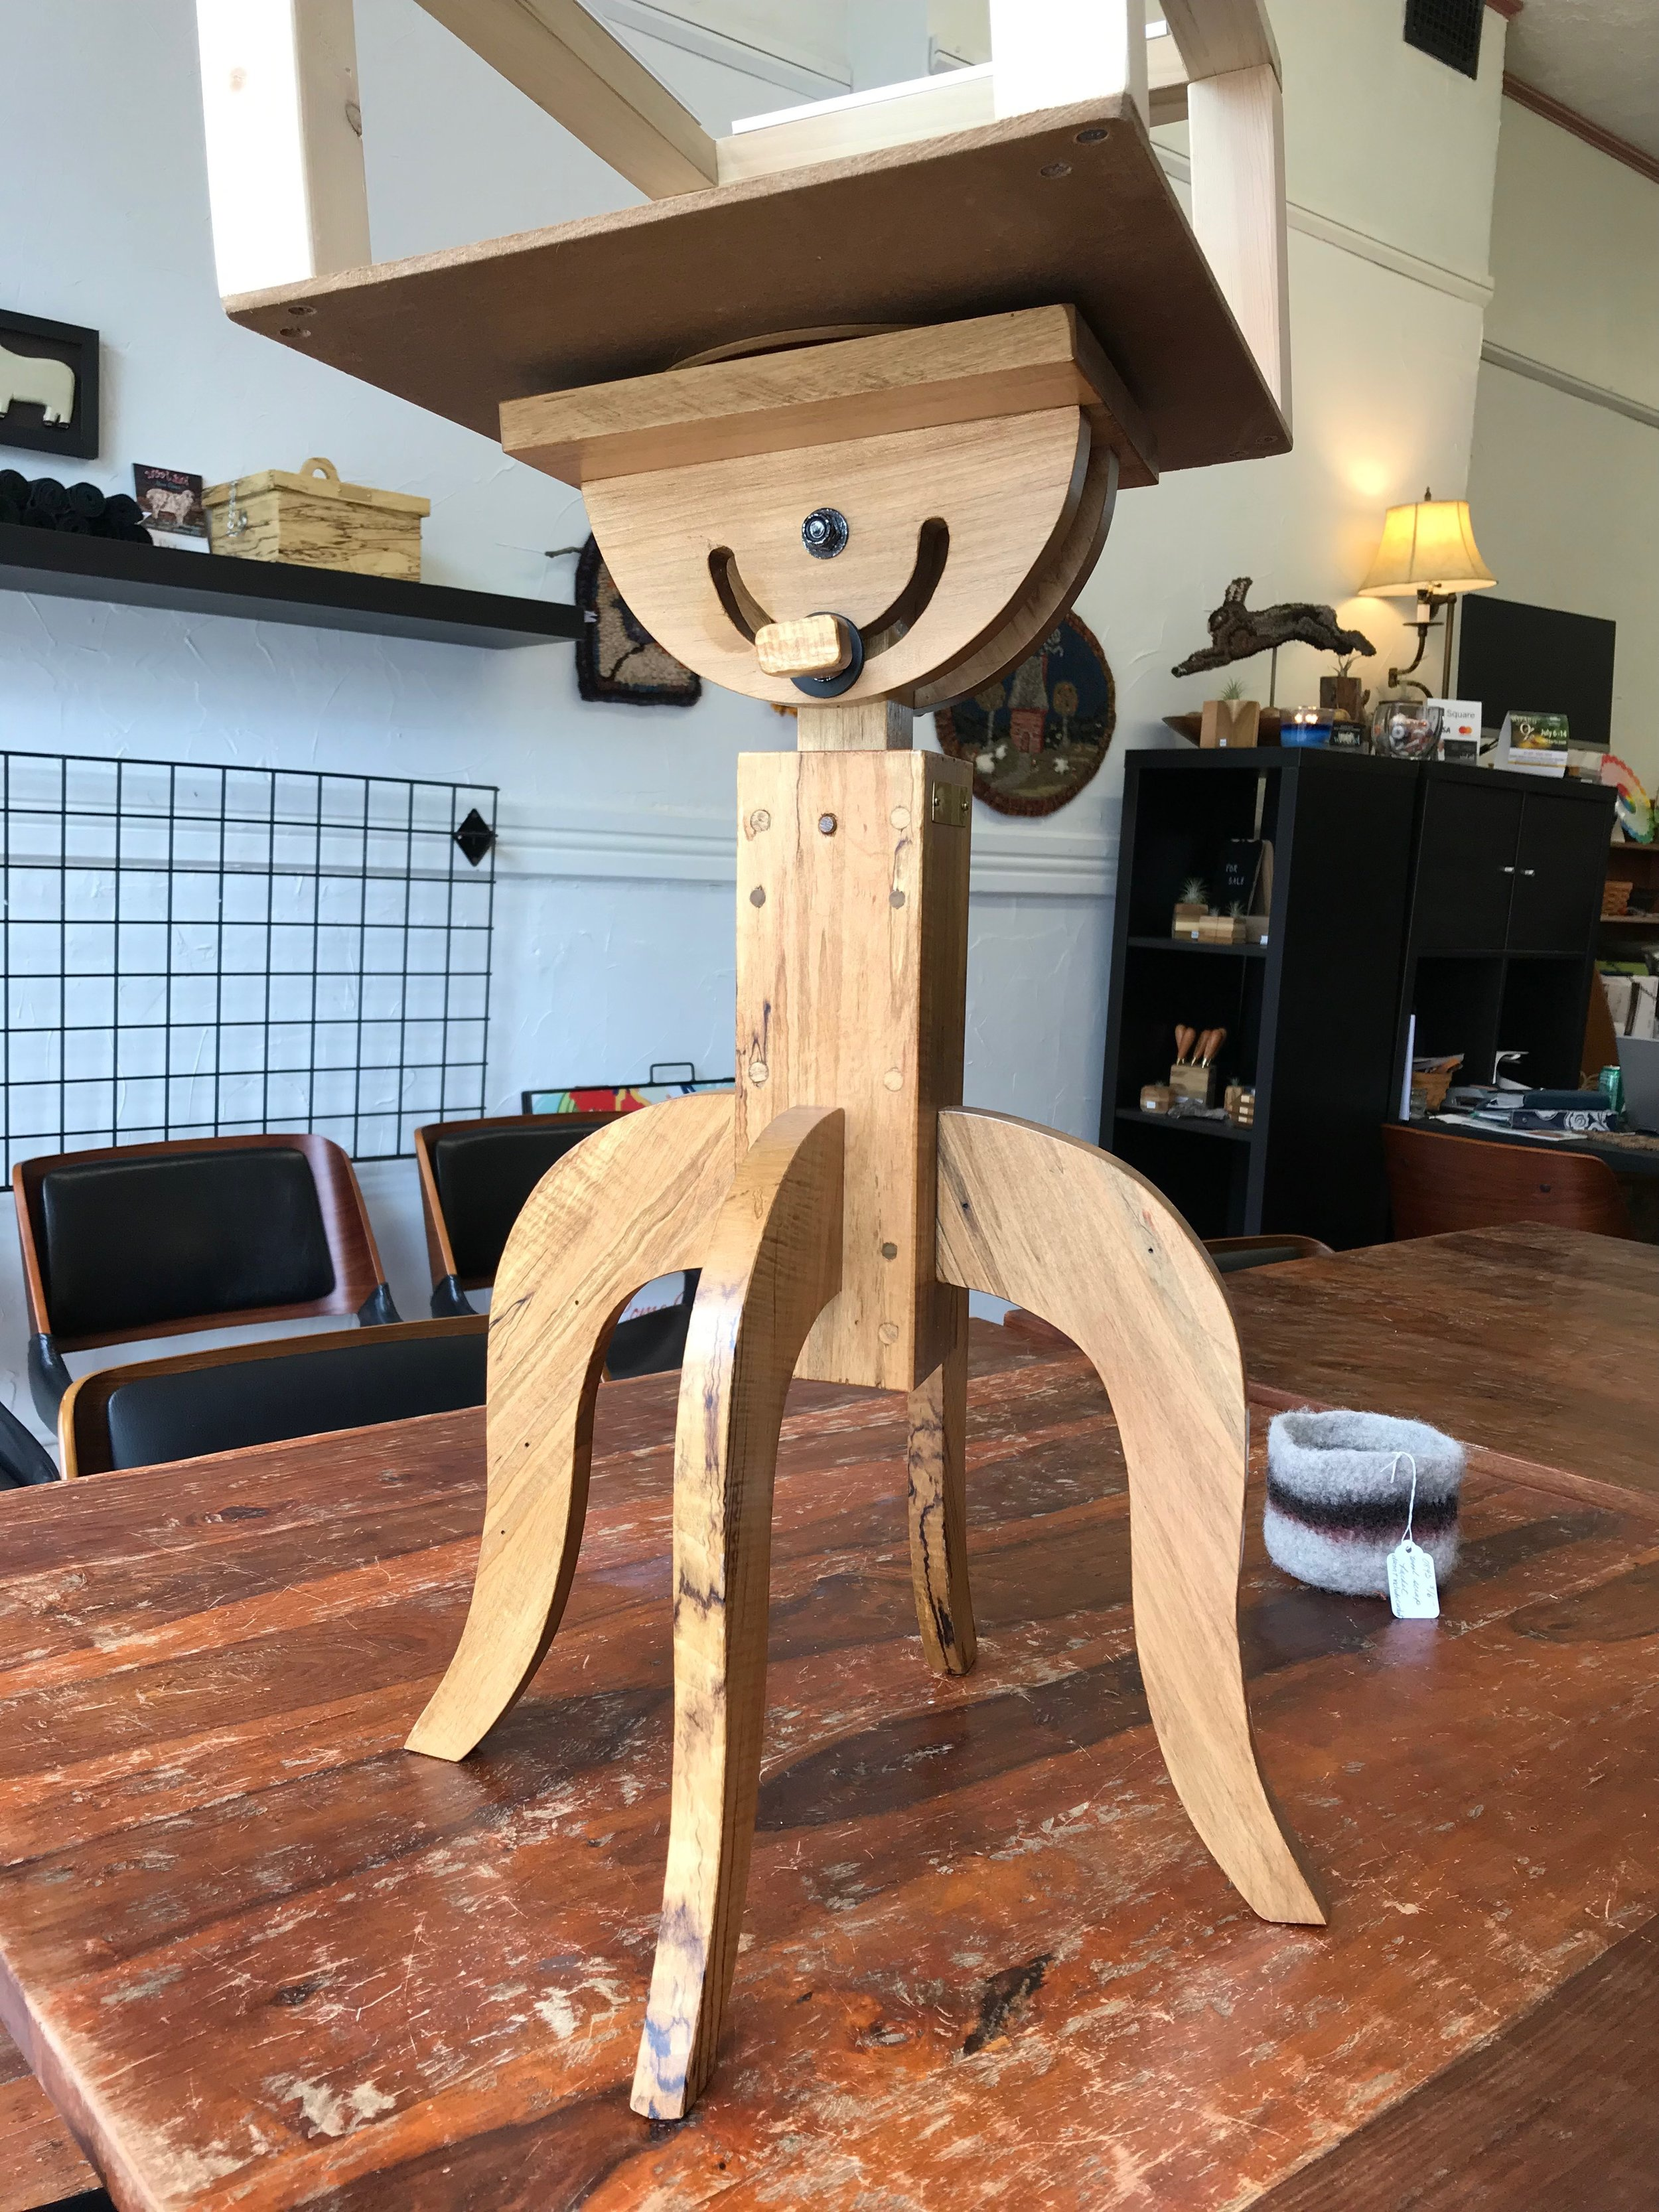 Handcrafted Rug Hooking Stands Now Here! - Height and tilt adjustment plus swivel action too! Available in walnut and spaulted hardwood maple. $190. We also have frames! Just a couple left, come in to try one out.